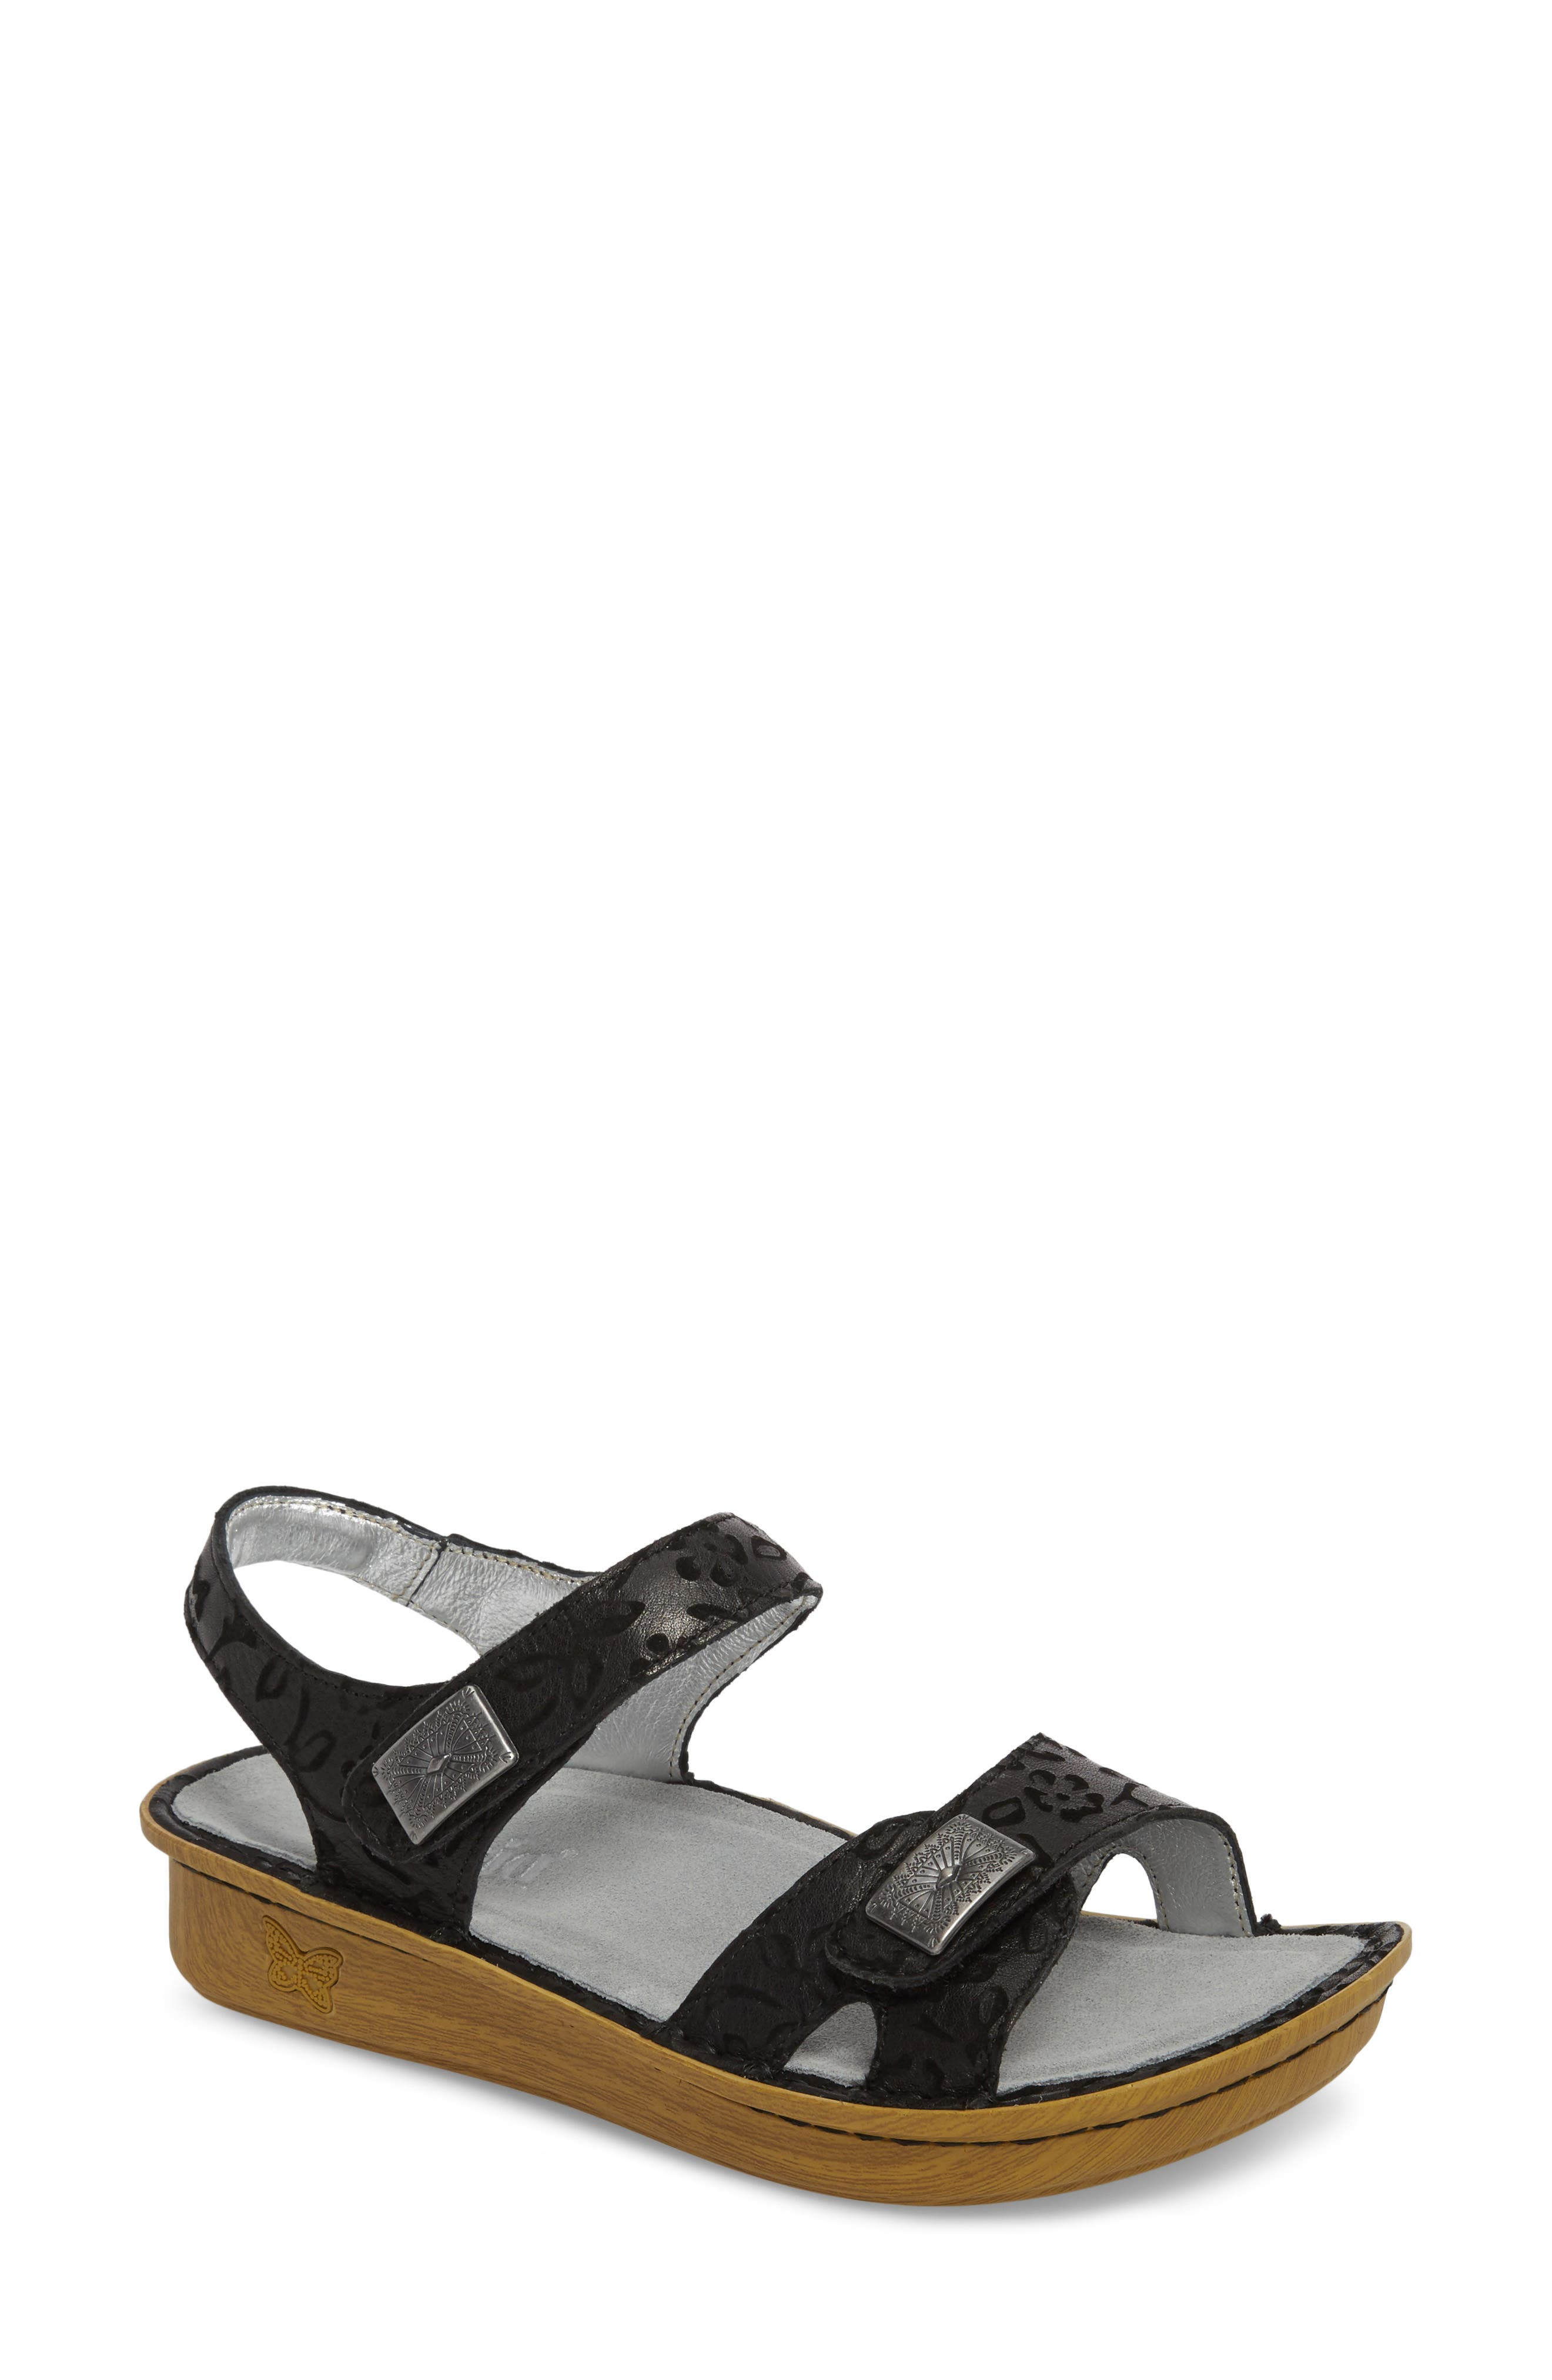 Vienna Sandal,                             Main thumbnail 1, color,                             MORNING GLORY BLACK LEATHER